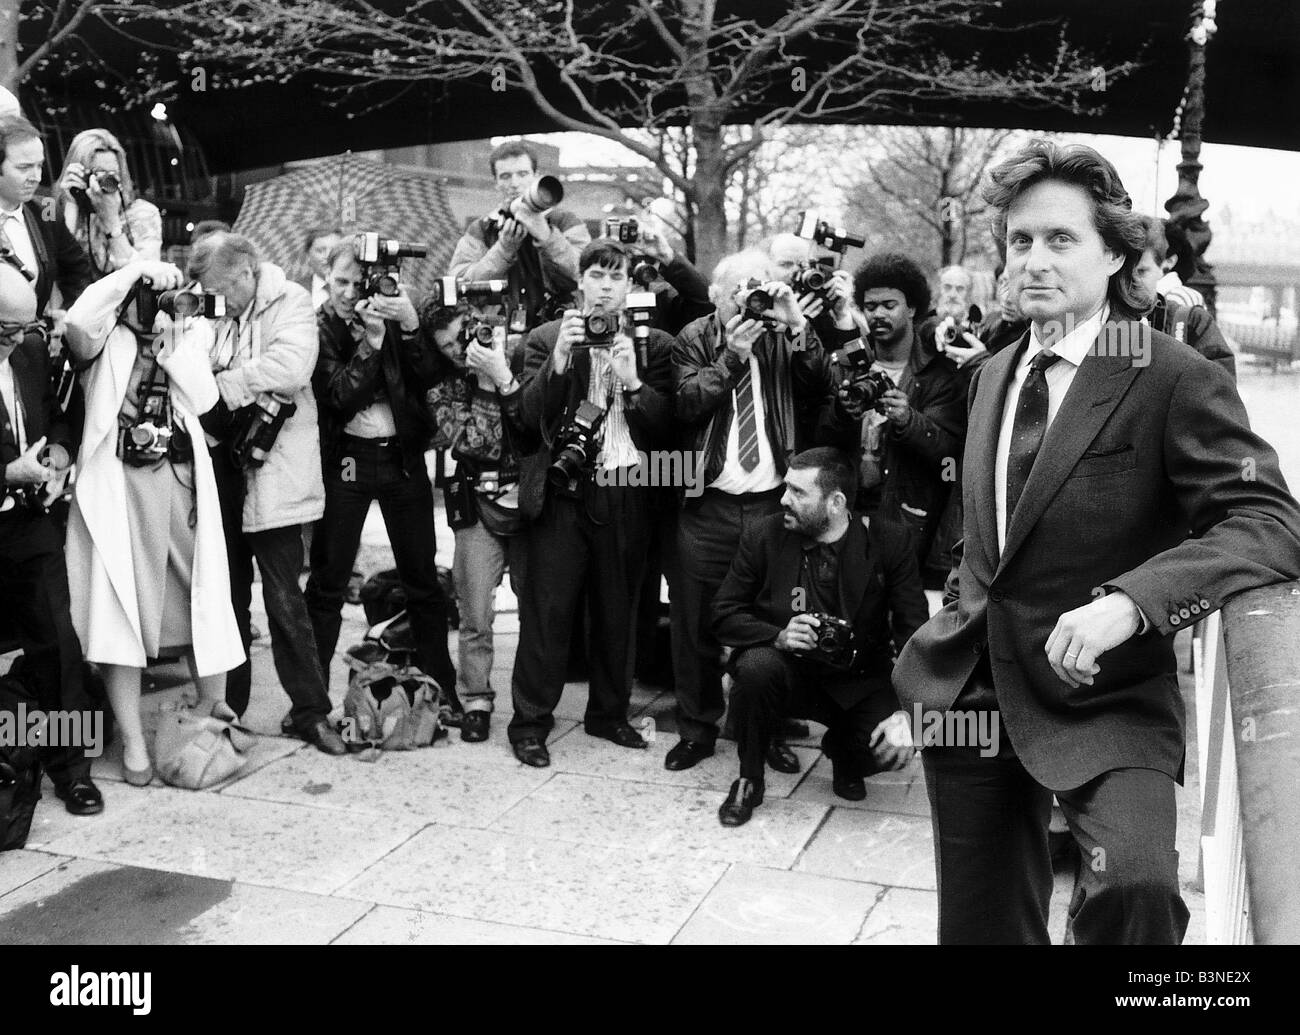 Michael Douglas actor leans on wall being photographed - Stock Image